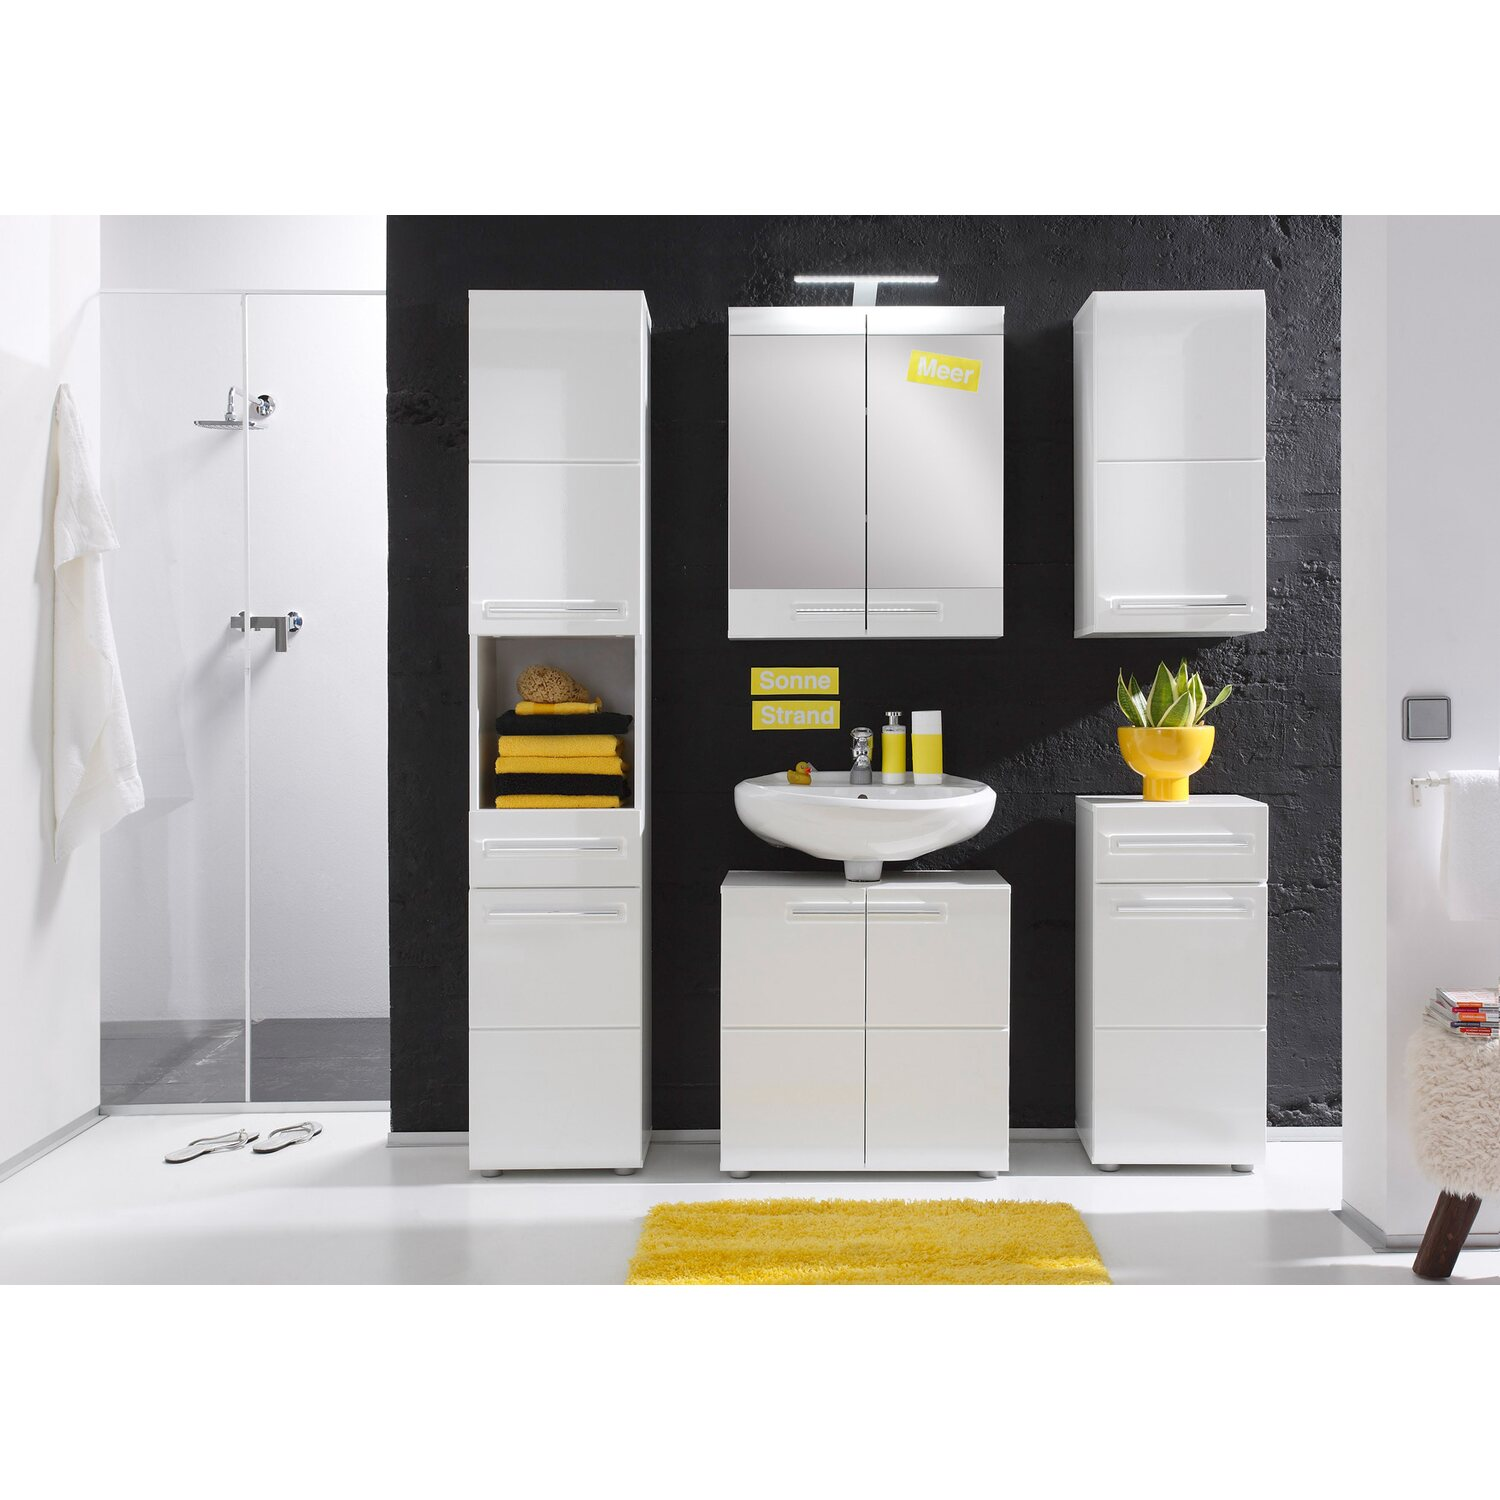 spiegelschrank bora bad 60 cm x 71 cm x 15 cm wei hochglanz kaufen bei obi. Black Bedroom Furniture Sets. Home Design Ideas